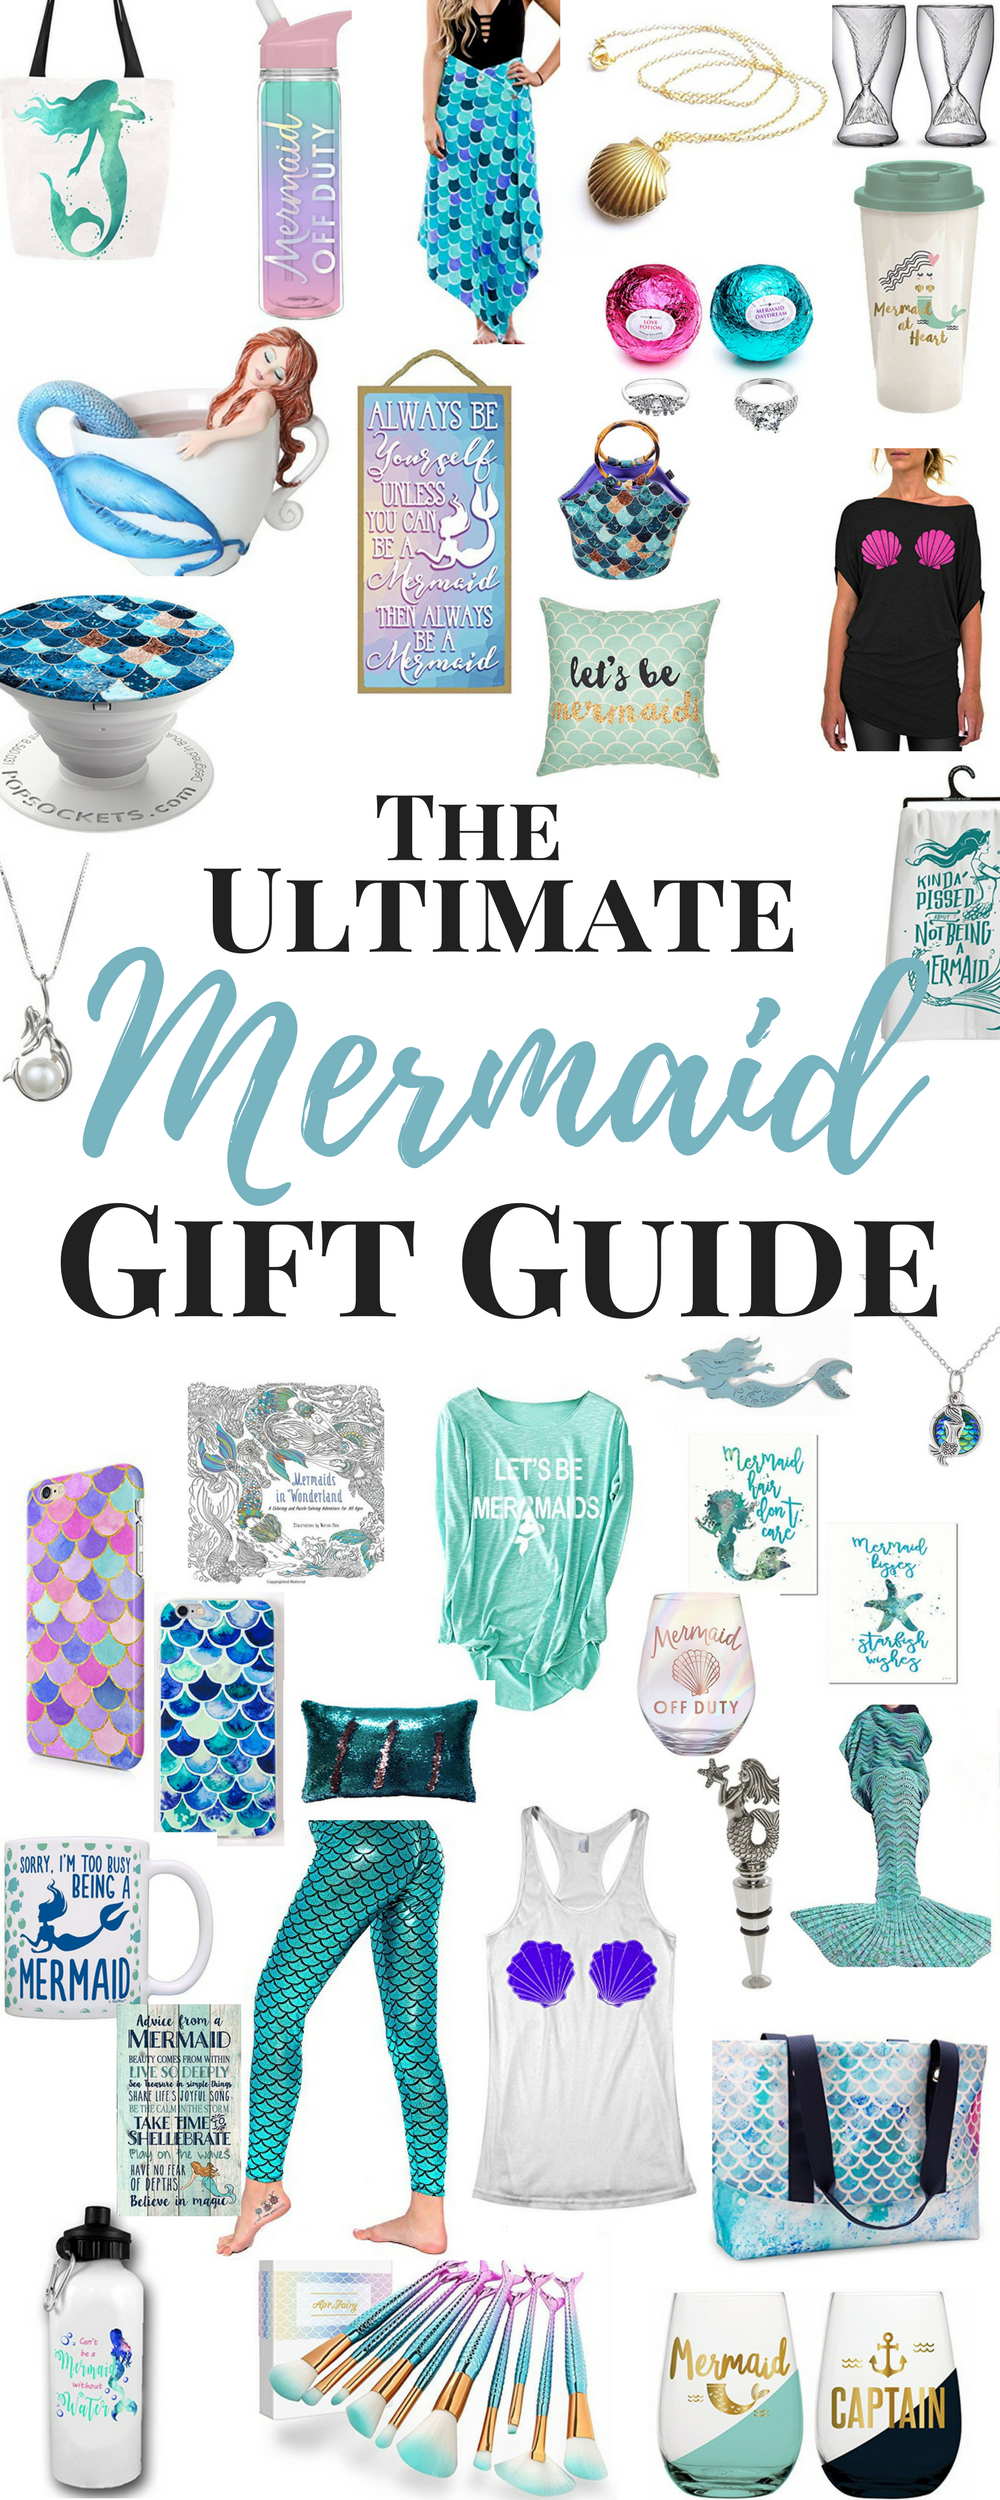 Mermaid Gift Guide.png